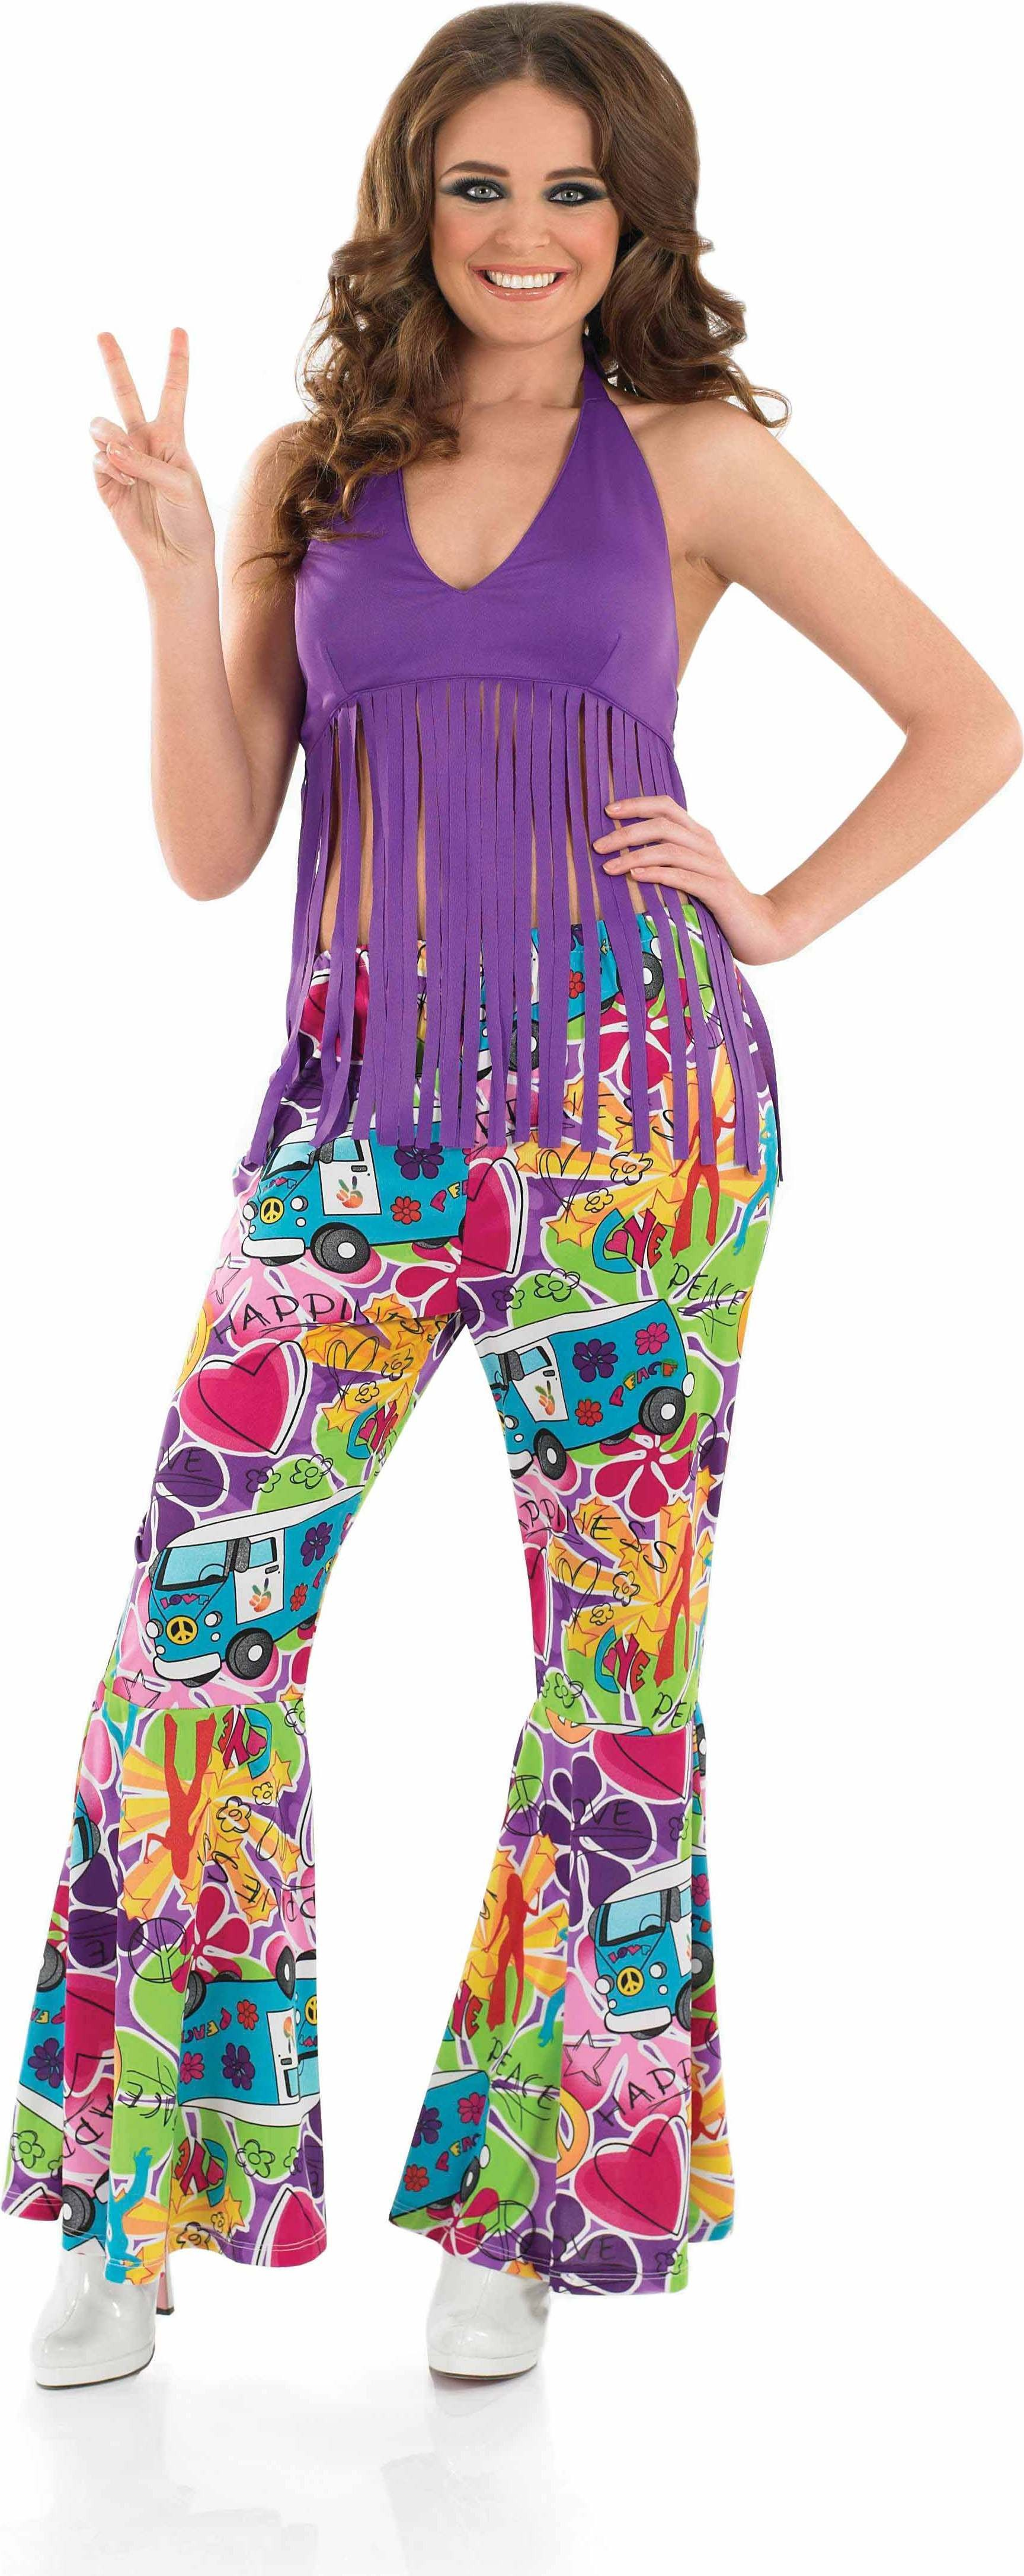 Ladies Purple Fringed Top Hippy Outfit - (Purple)